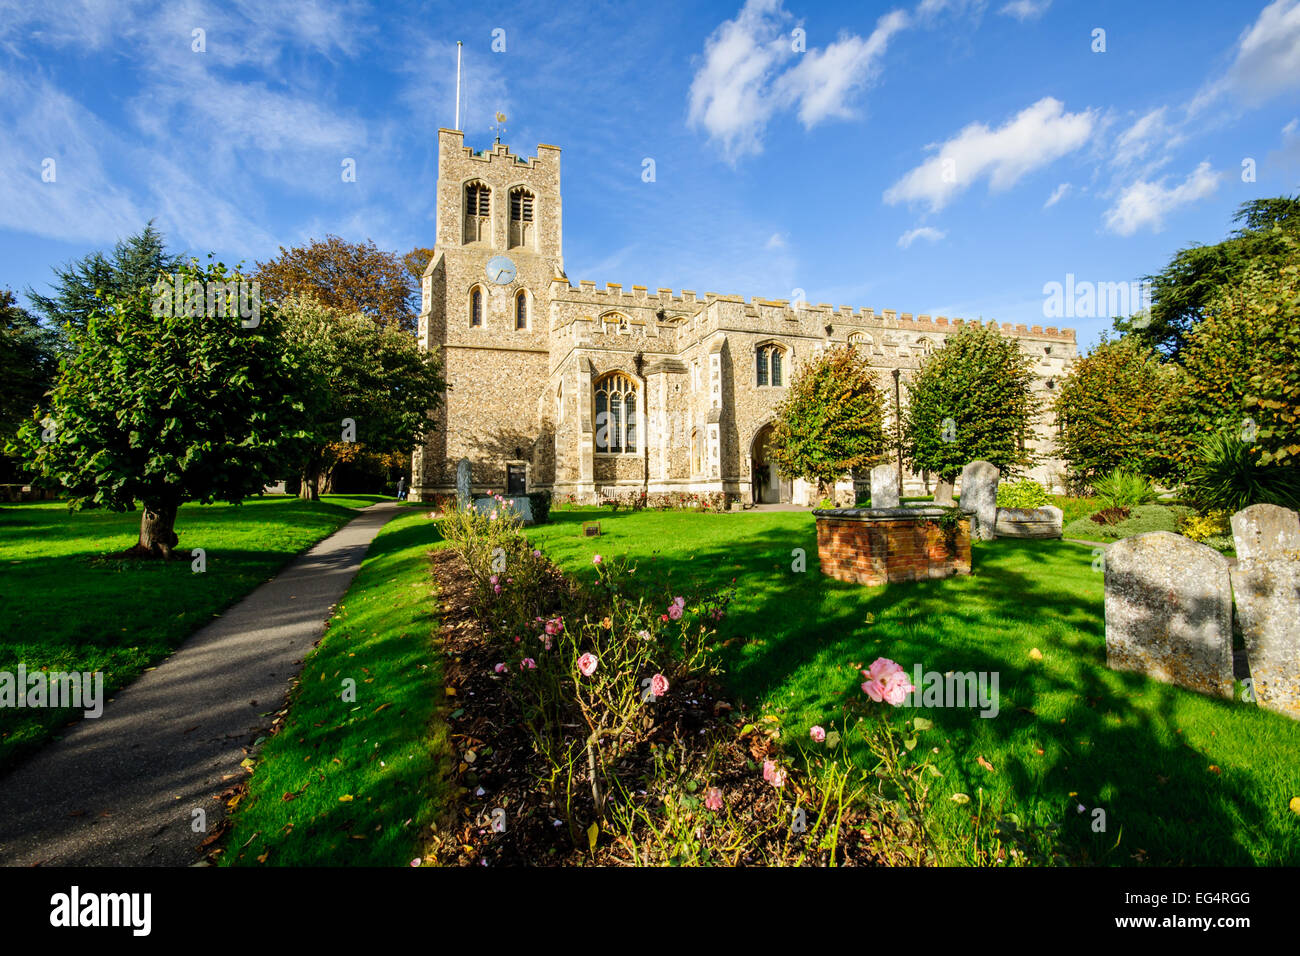 The 15th Century Parish Church of St Peter ad Vincula, Coggeshall, Essex, East Anglia - Stock Image